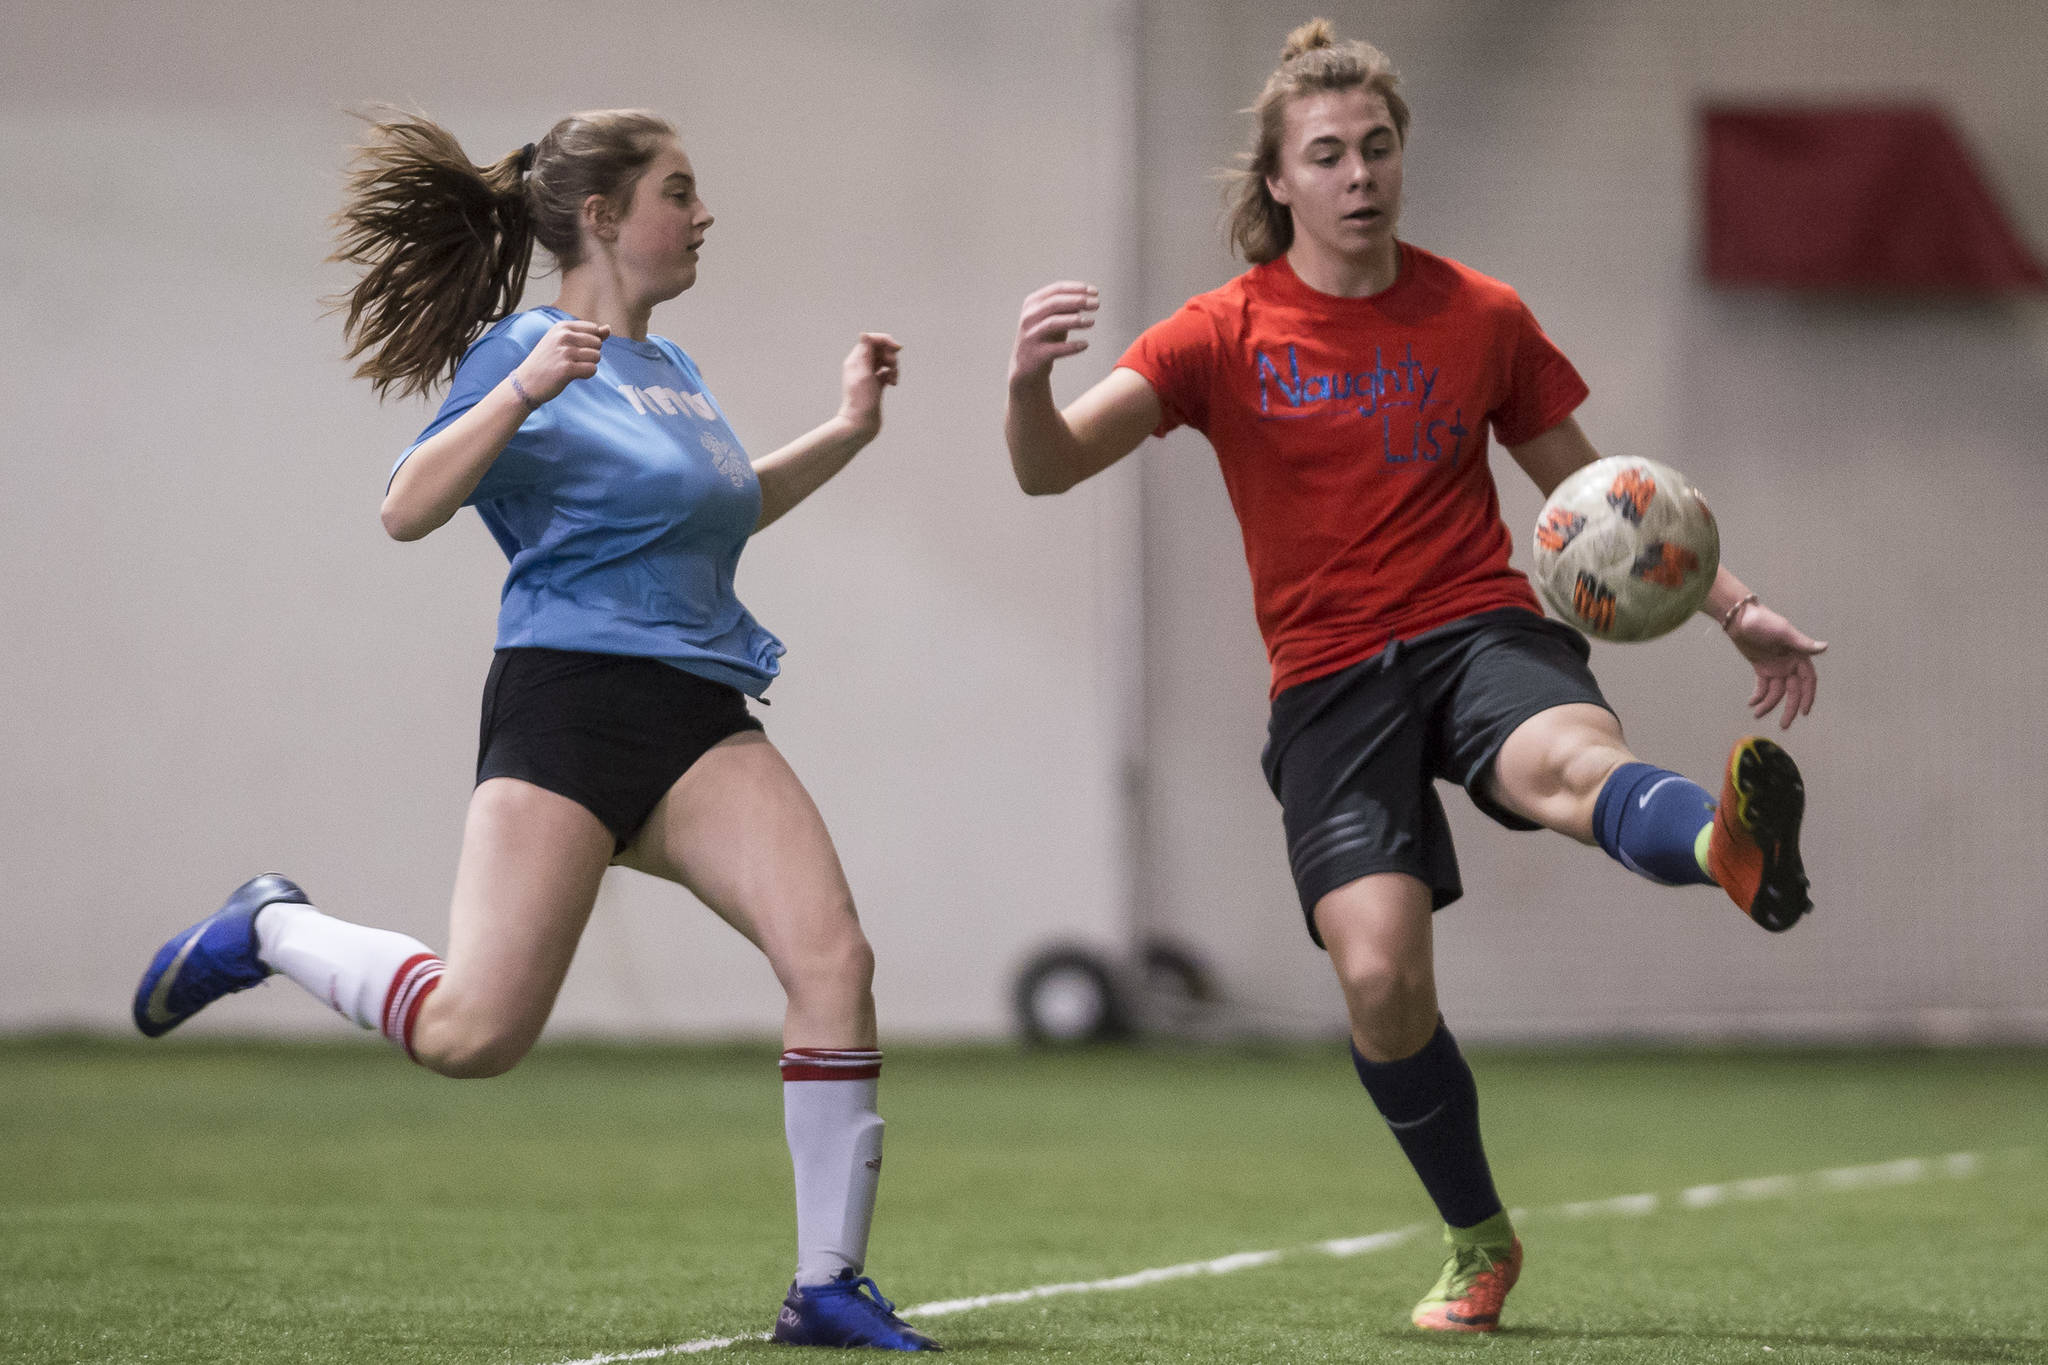 Iced Out, blue, competes against Naughty List, red, in the finals of the high school division at the annual Holiday Cup Soccer Tournament at the Wells Fargo Dimond Park Field House on Monday, Dec. 31, 2018. Iced Out won 8-2. (Michael Penn | Juneau Empire)